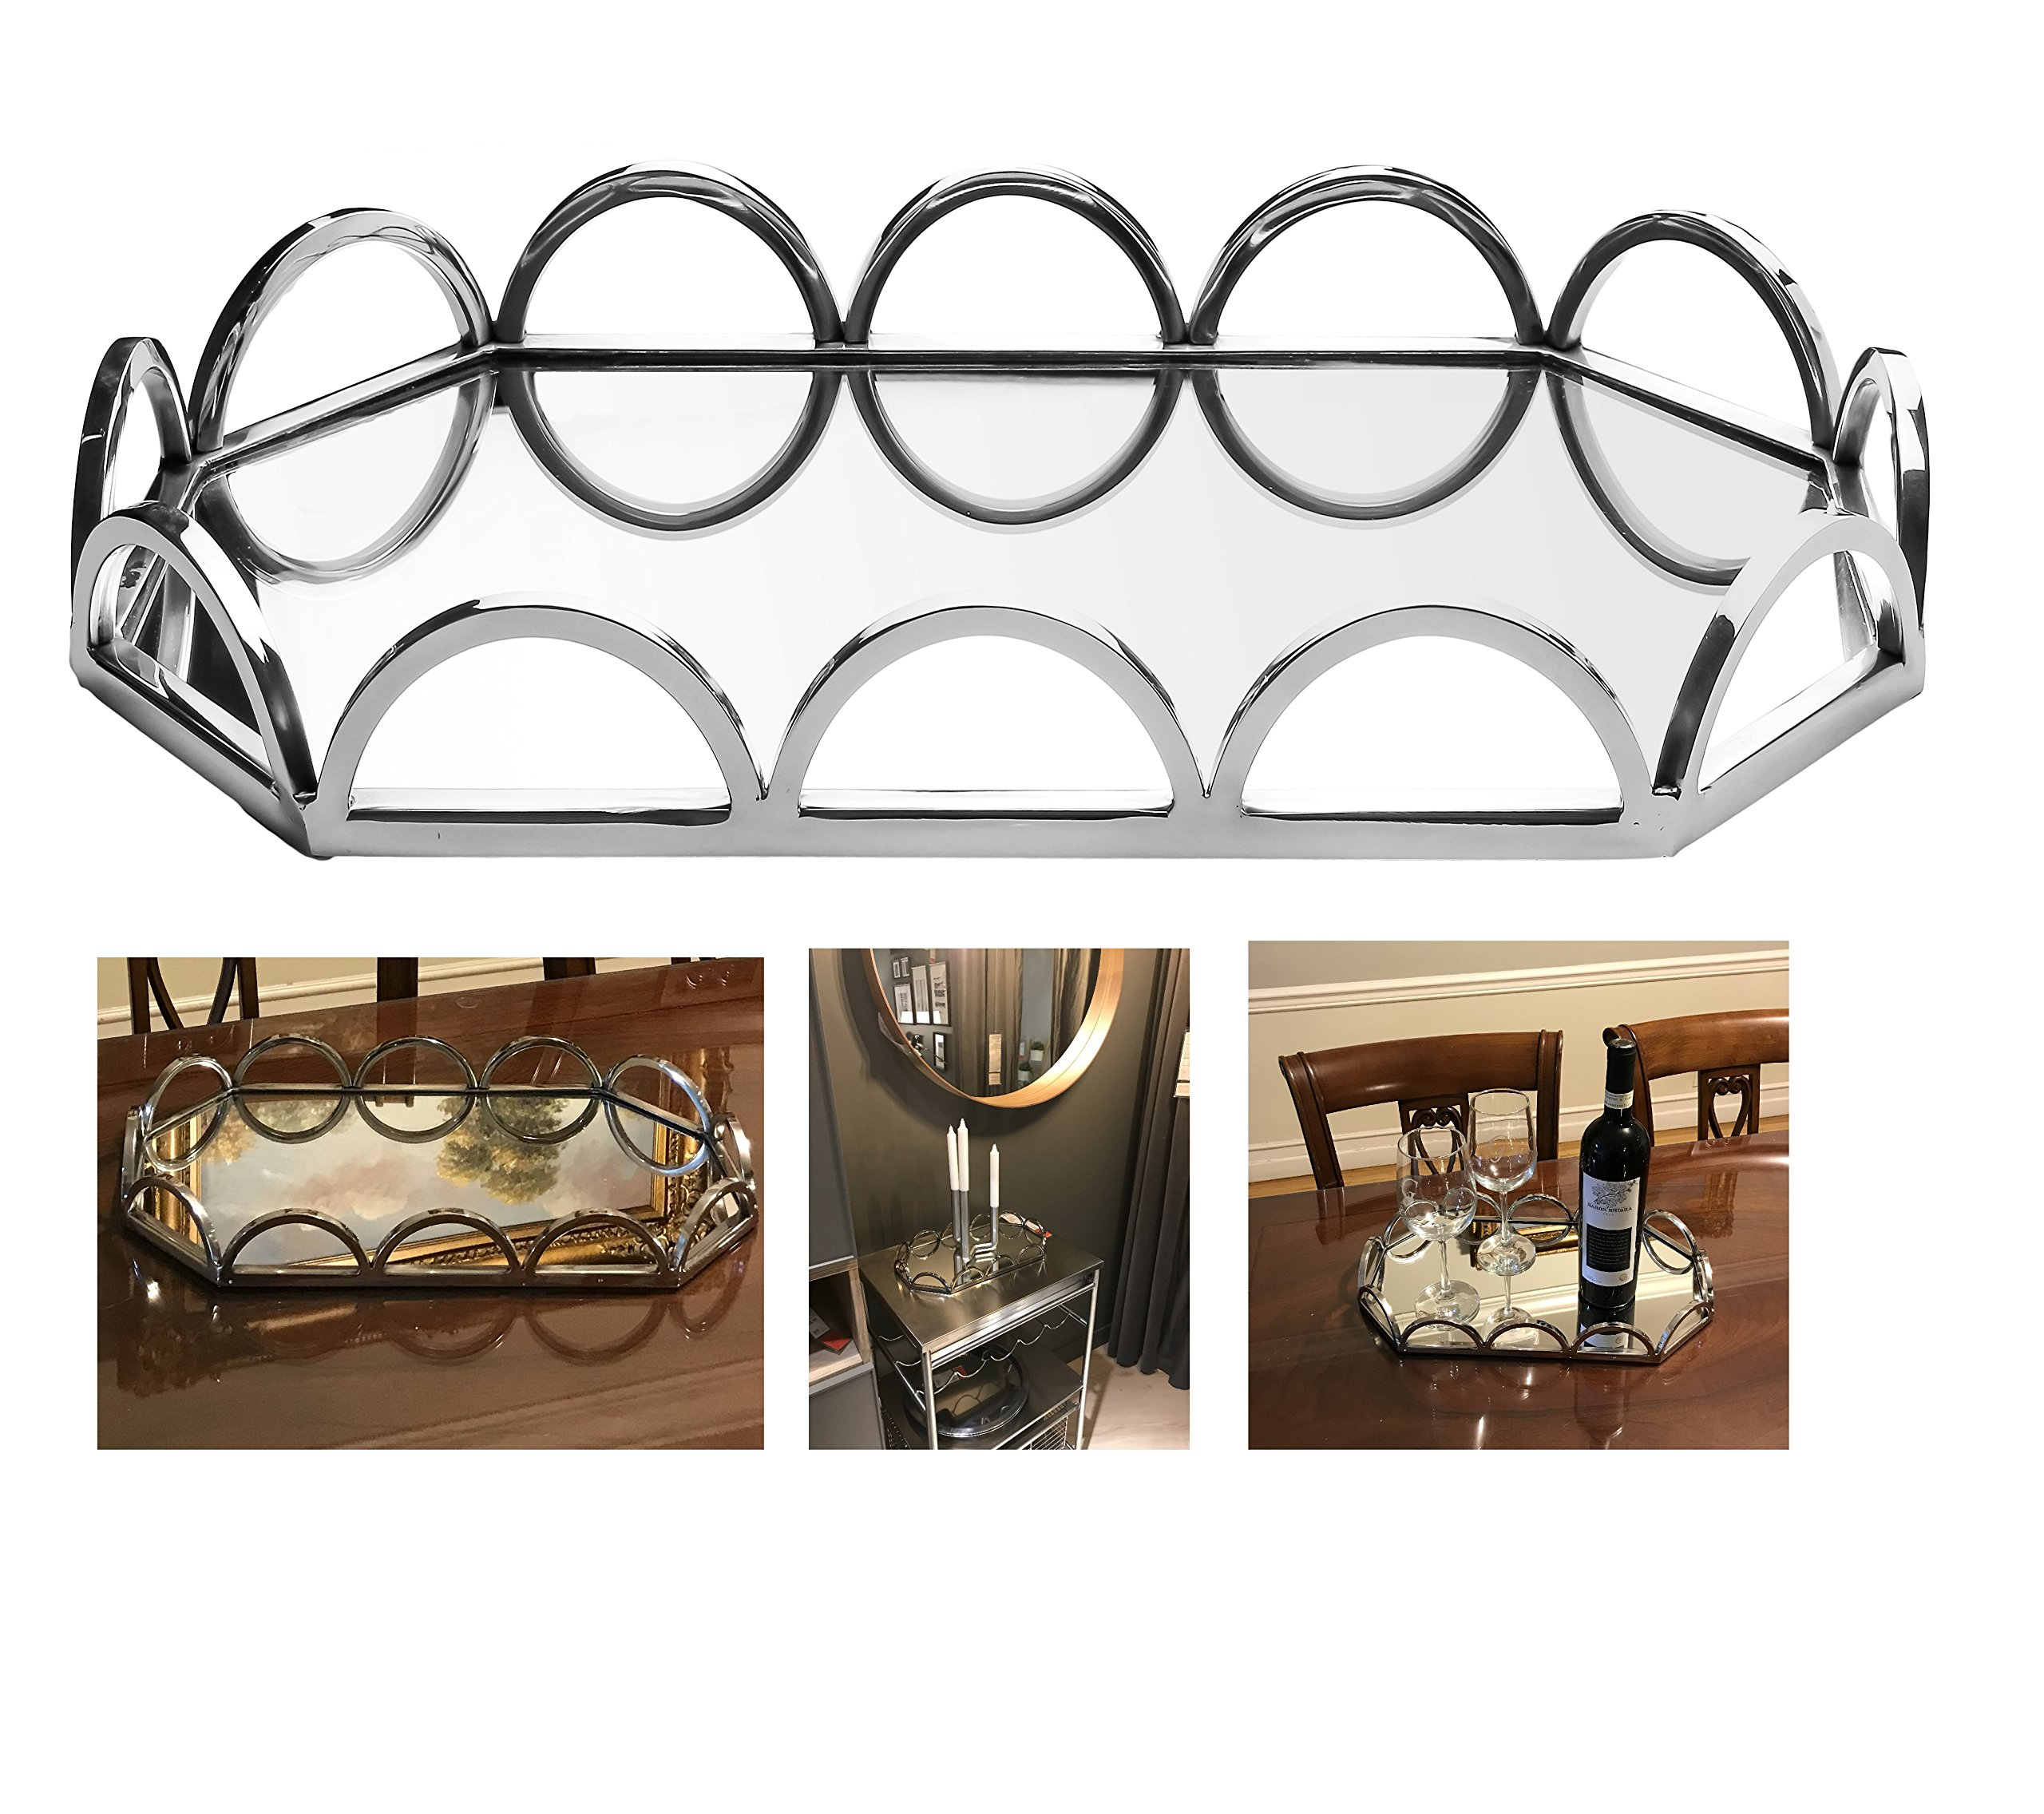 Elegant Mirrored Rectangular Silver Tray with Chrome Loop Rails Ideal for Whiskey Decanter, Candle Sticks, Vanity Set and Serving.